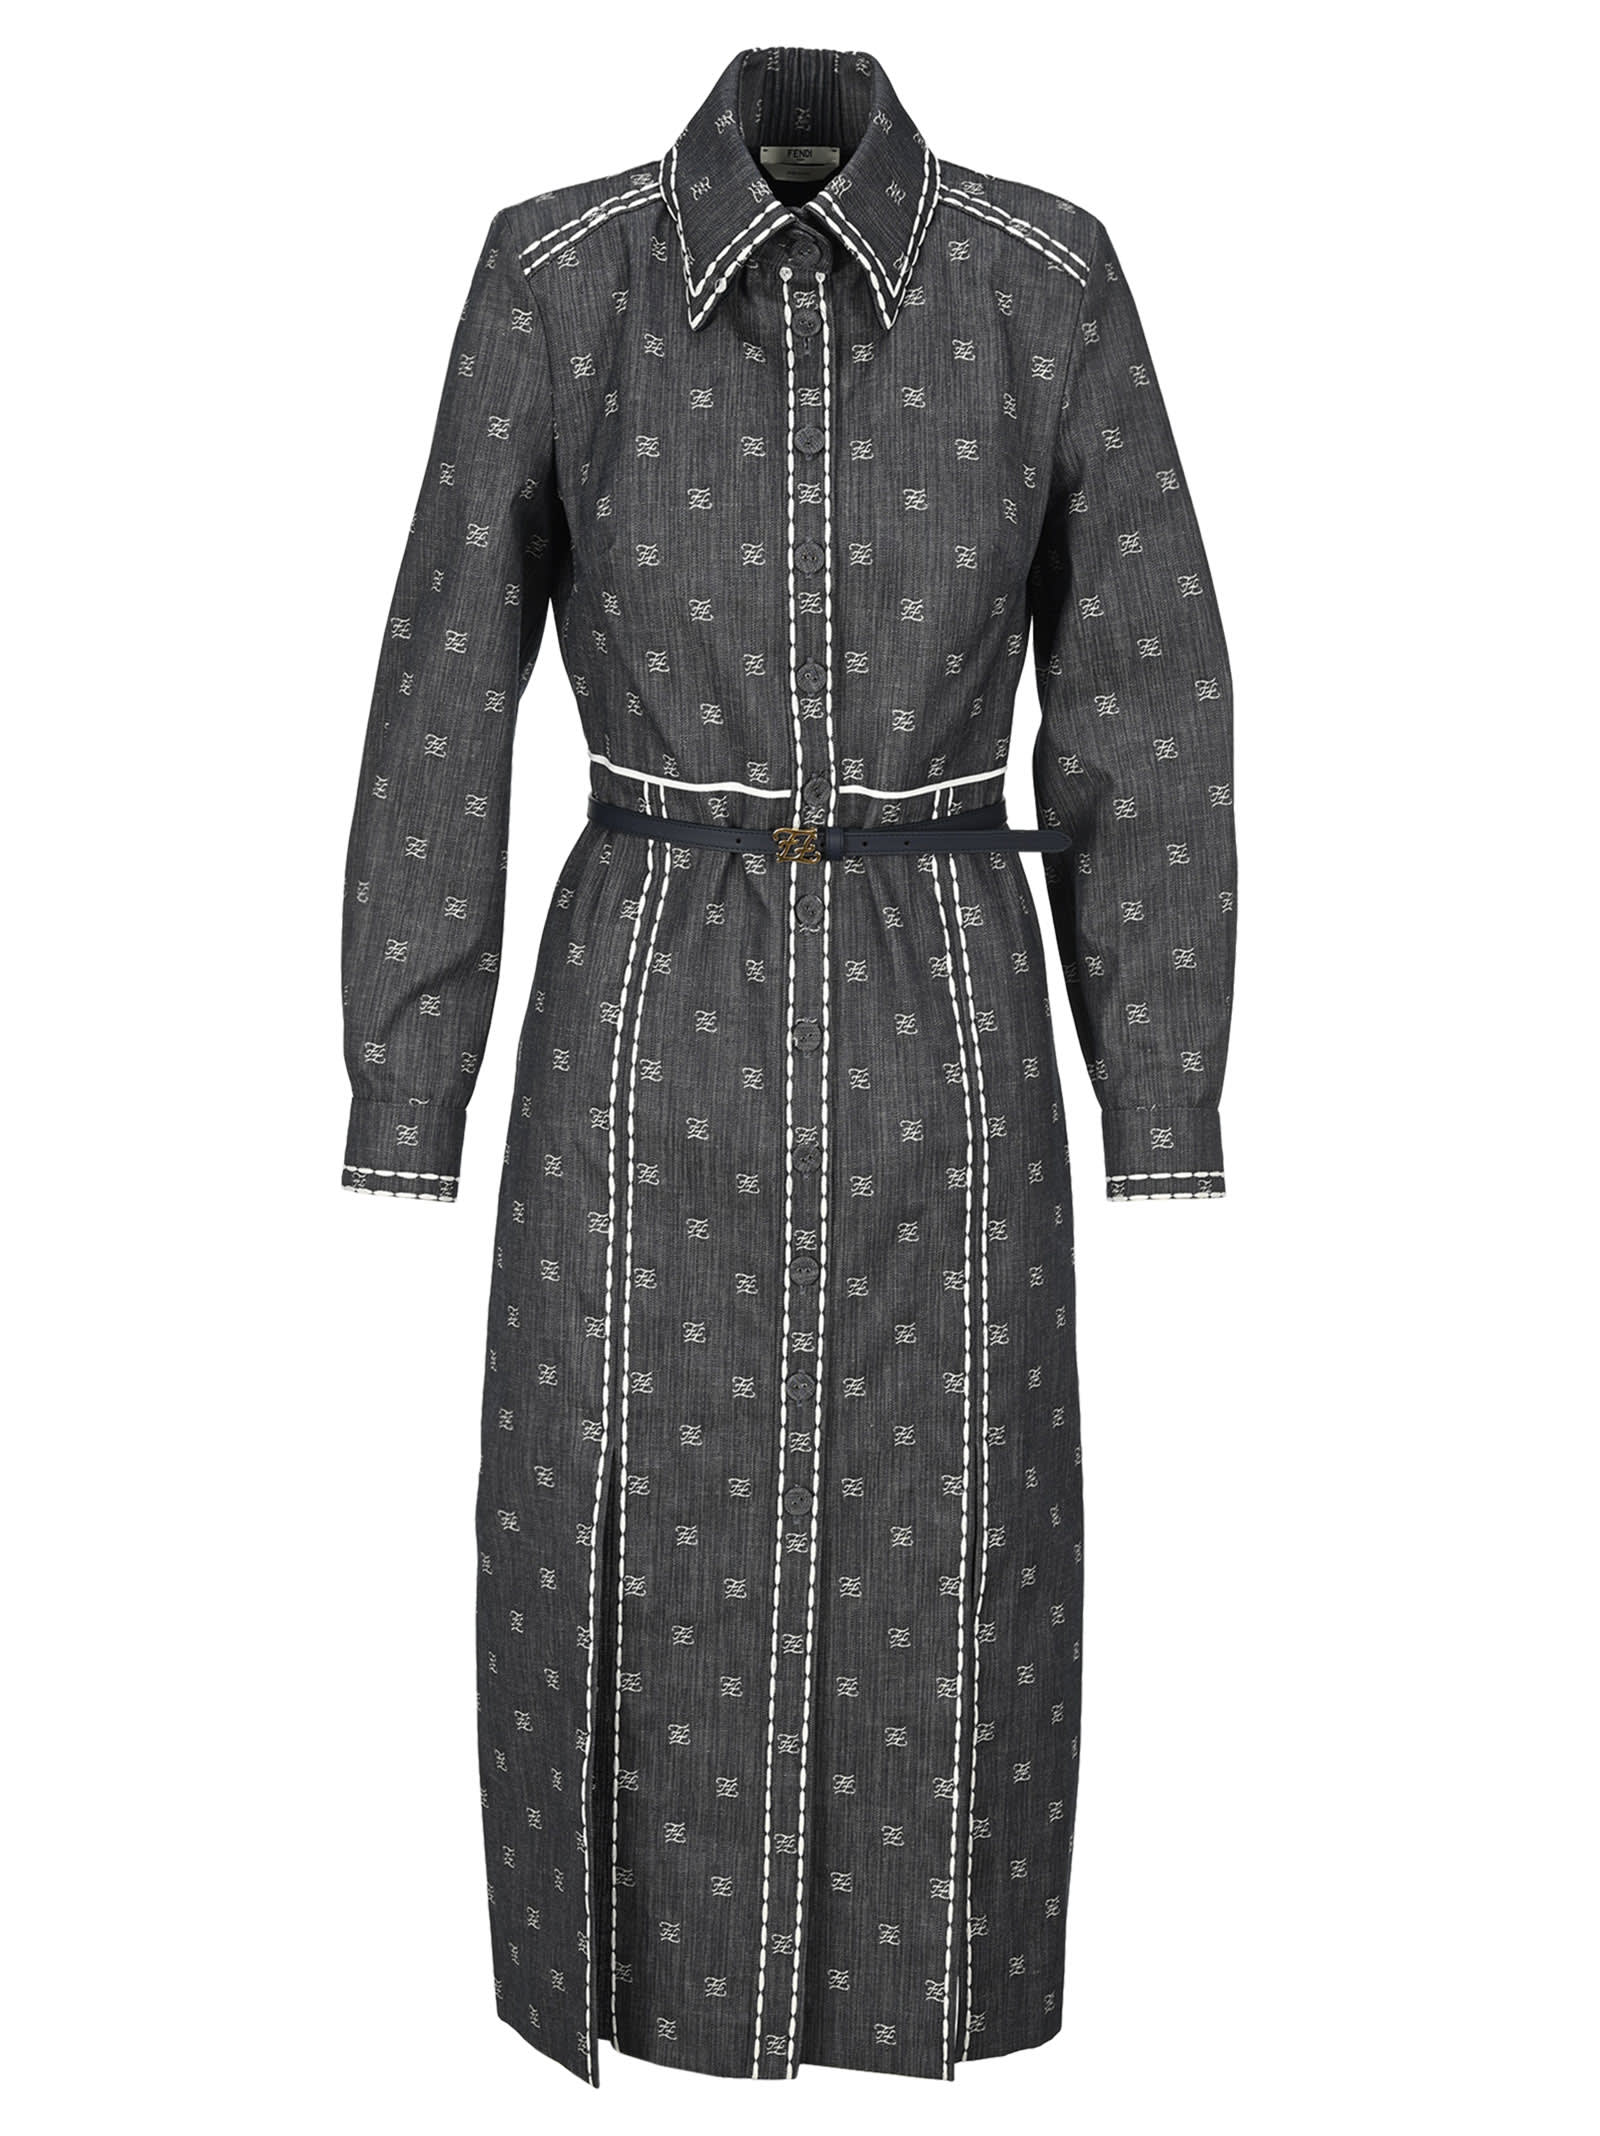 Buy Fendi Ff Karligraphy Shirt Dress online, shop Fendi with free shipping